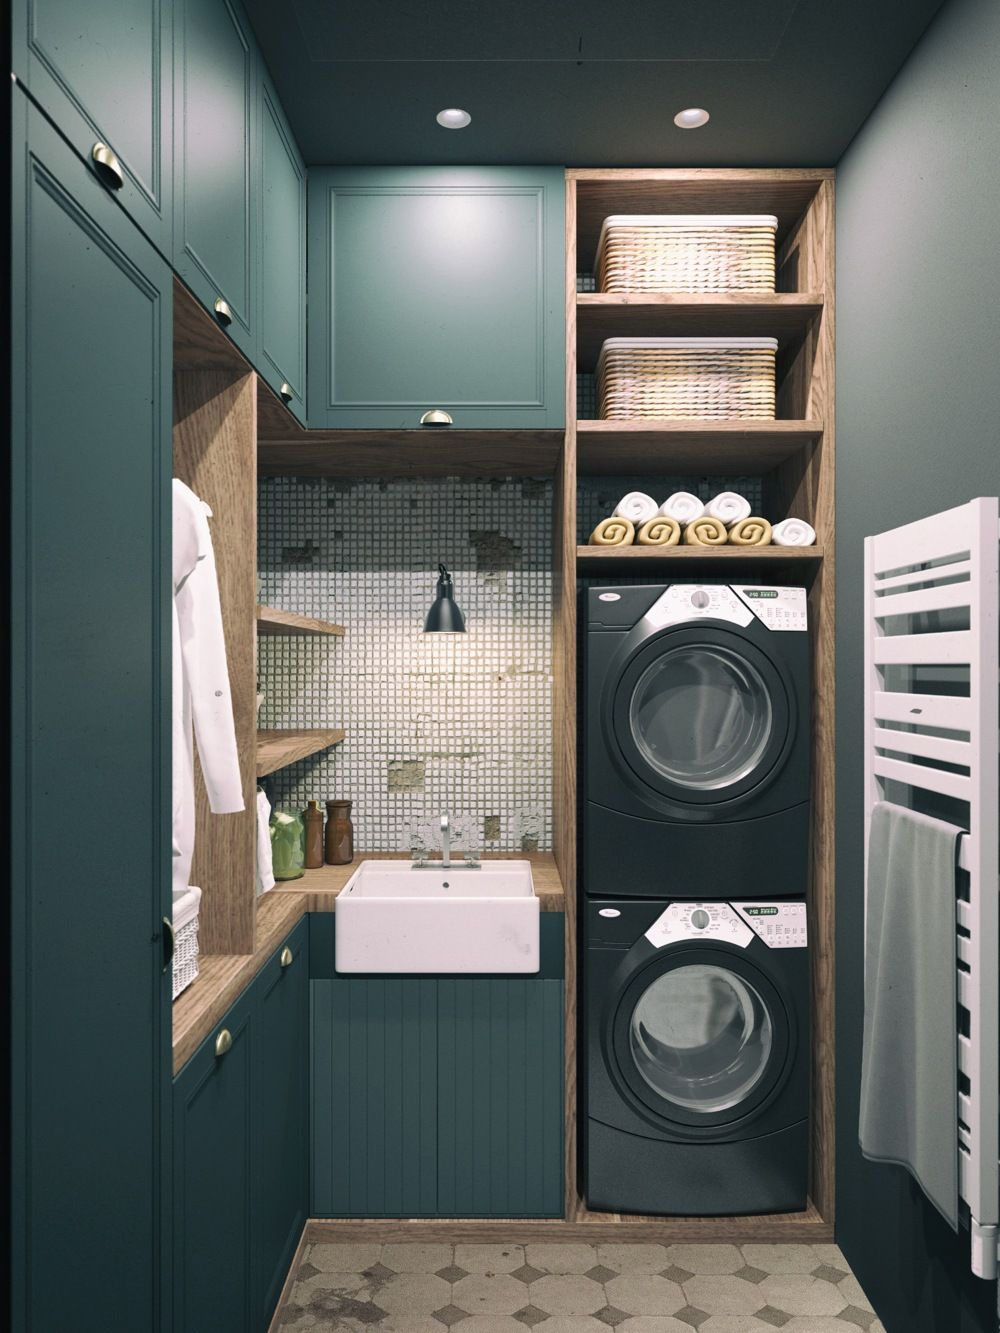 Design Your Own Laundry Room: 19 Fabulous Ideas How To Add Color To Your Laundry Room